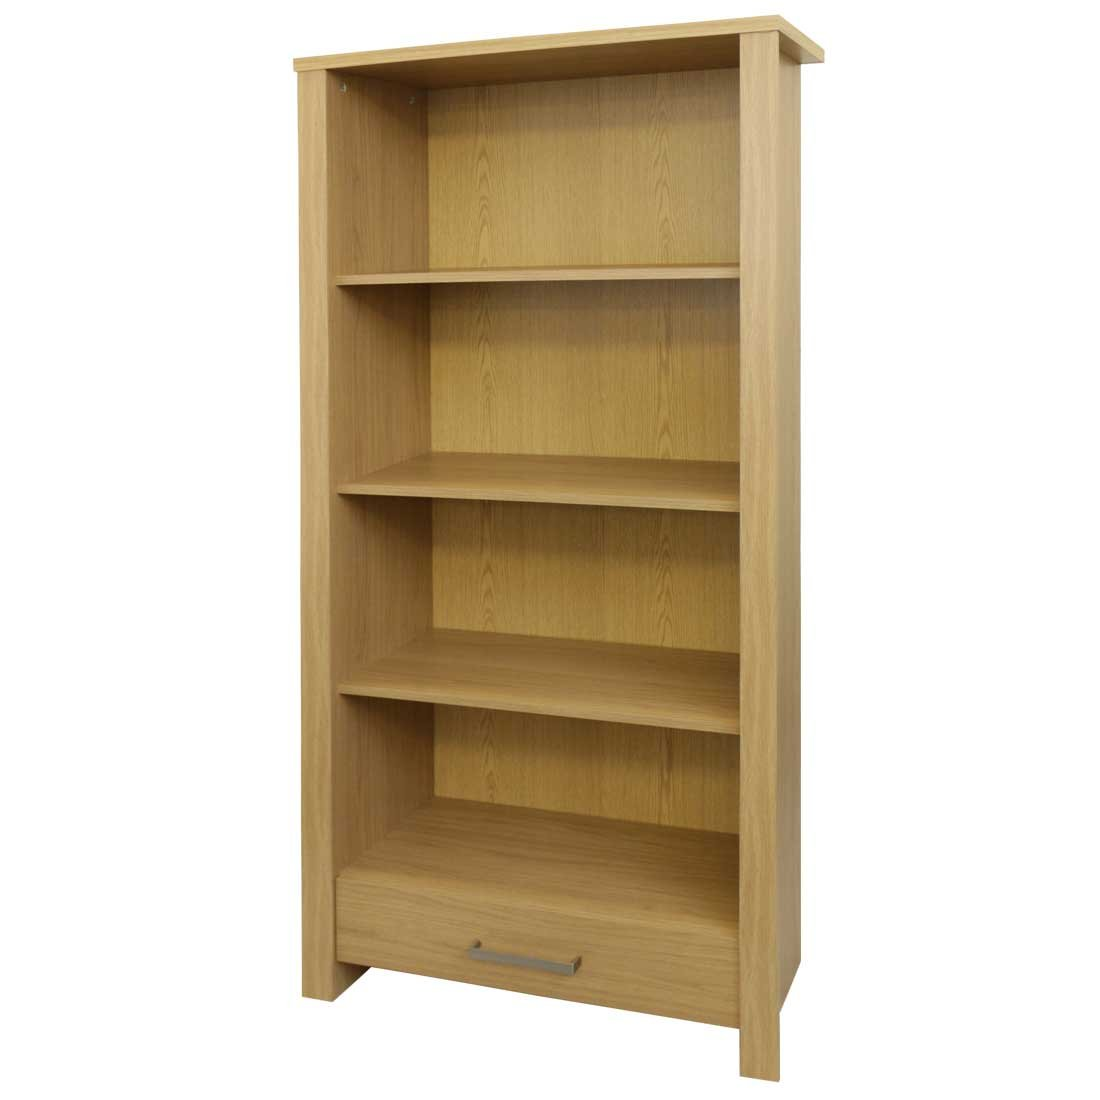 furniture lifestyle bookcases bookcase oak main low with uk emsworth drawer